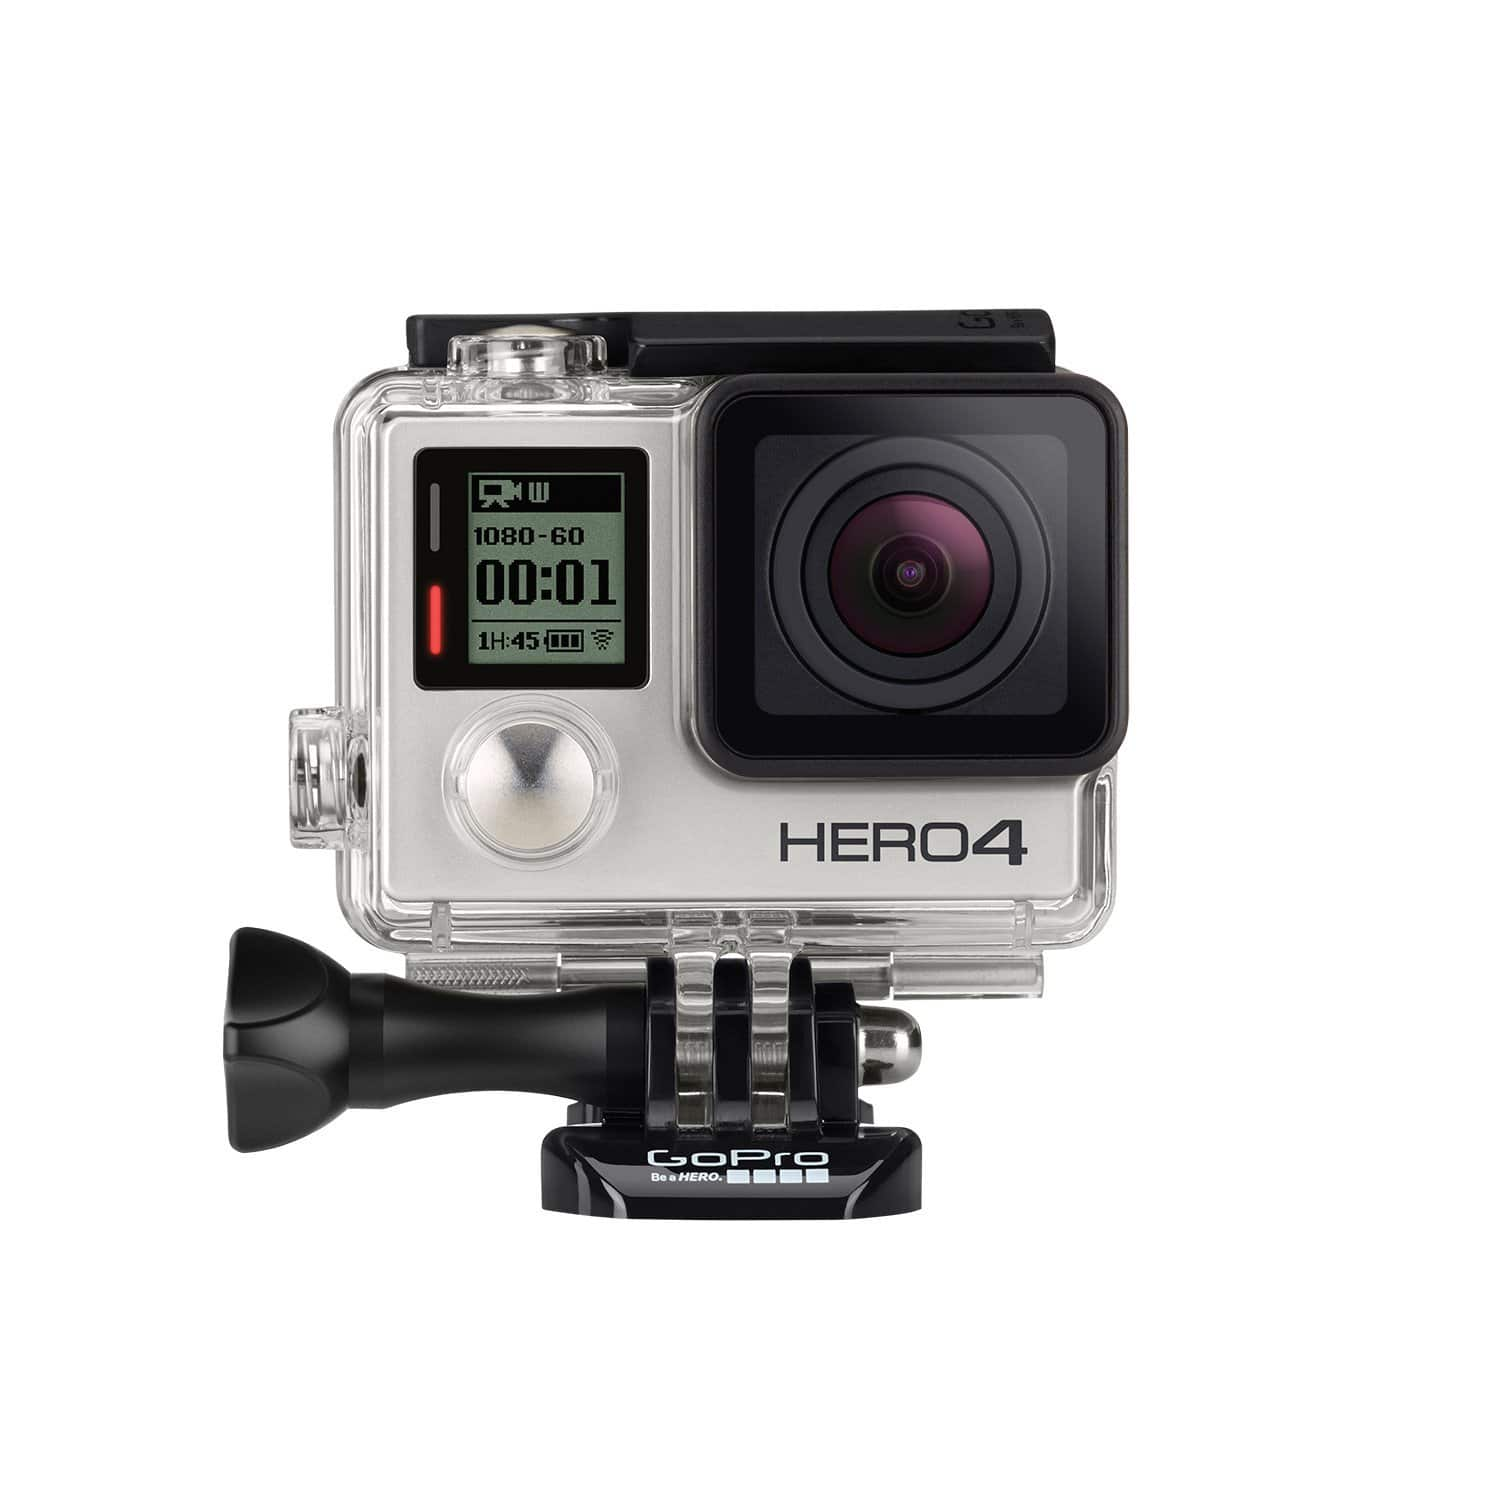 GoPro HERO4 Silver Edition Action Camera  $300 or less + Free Shipping